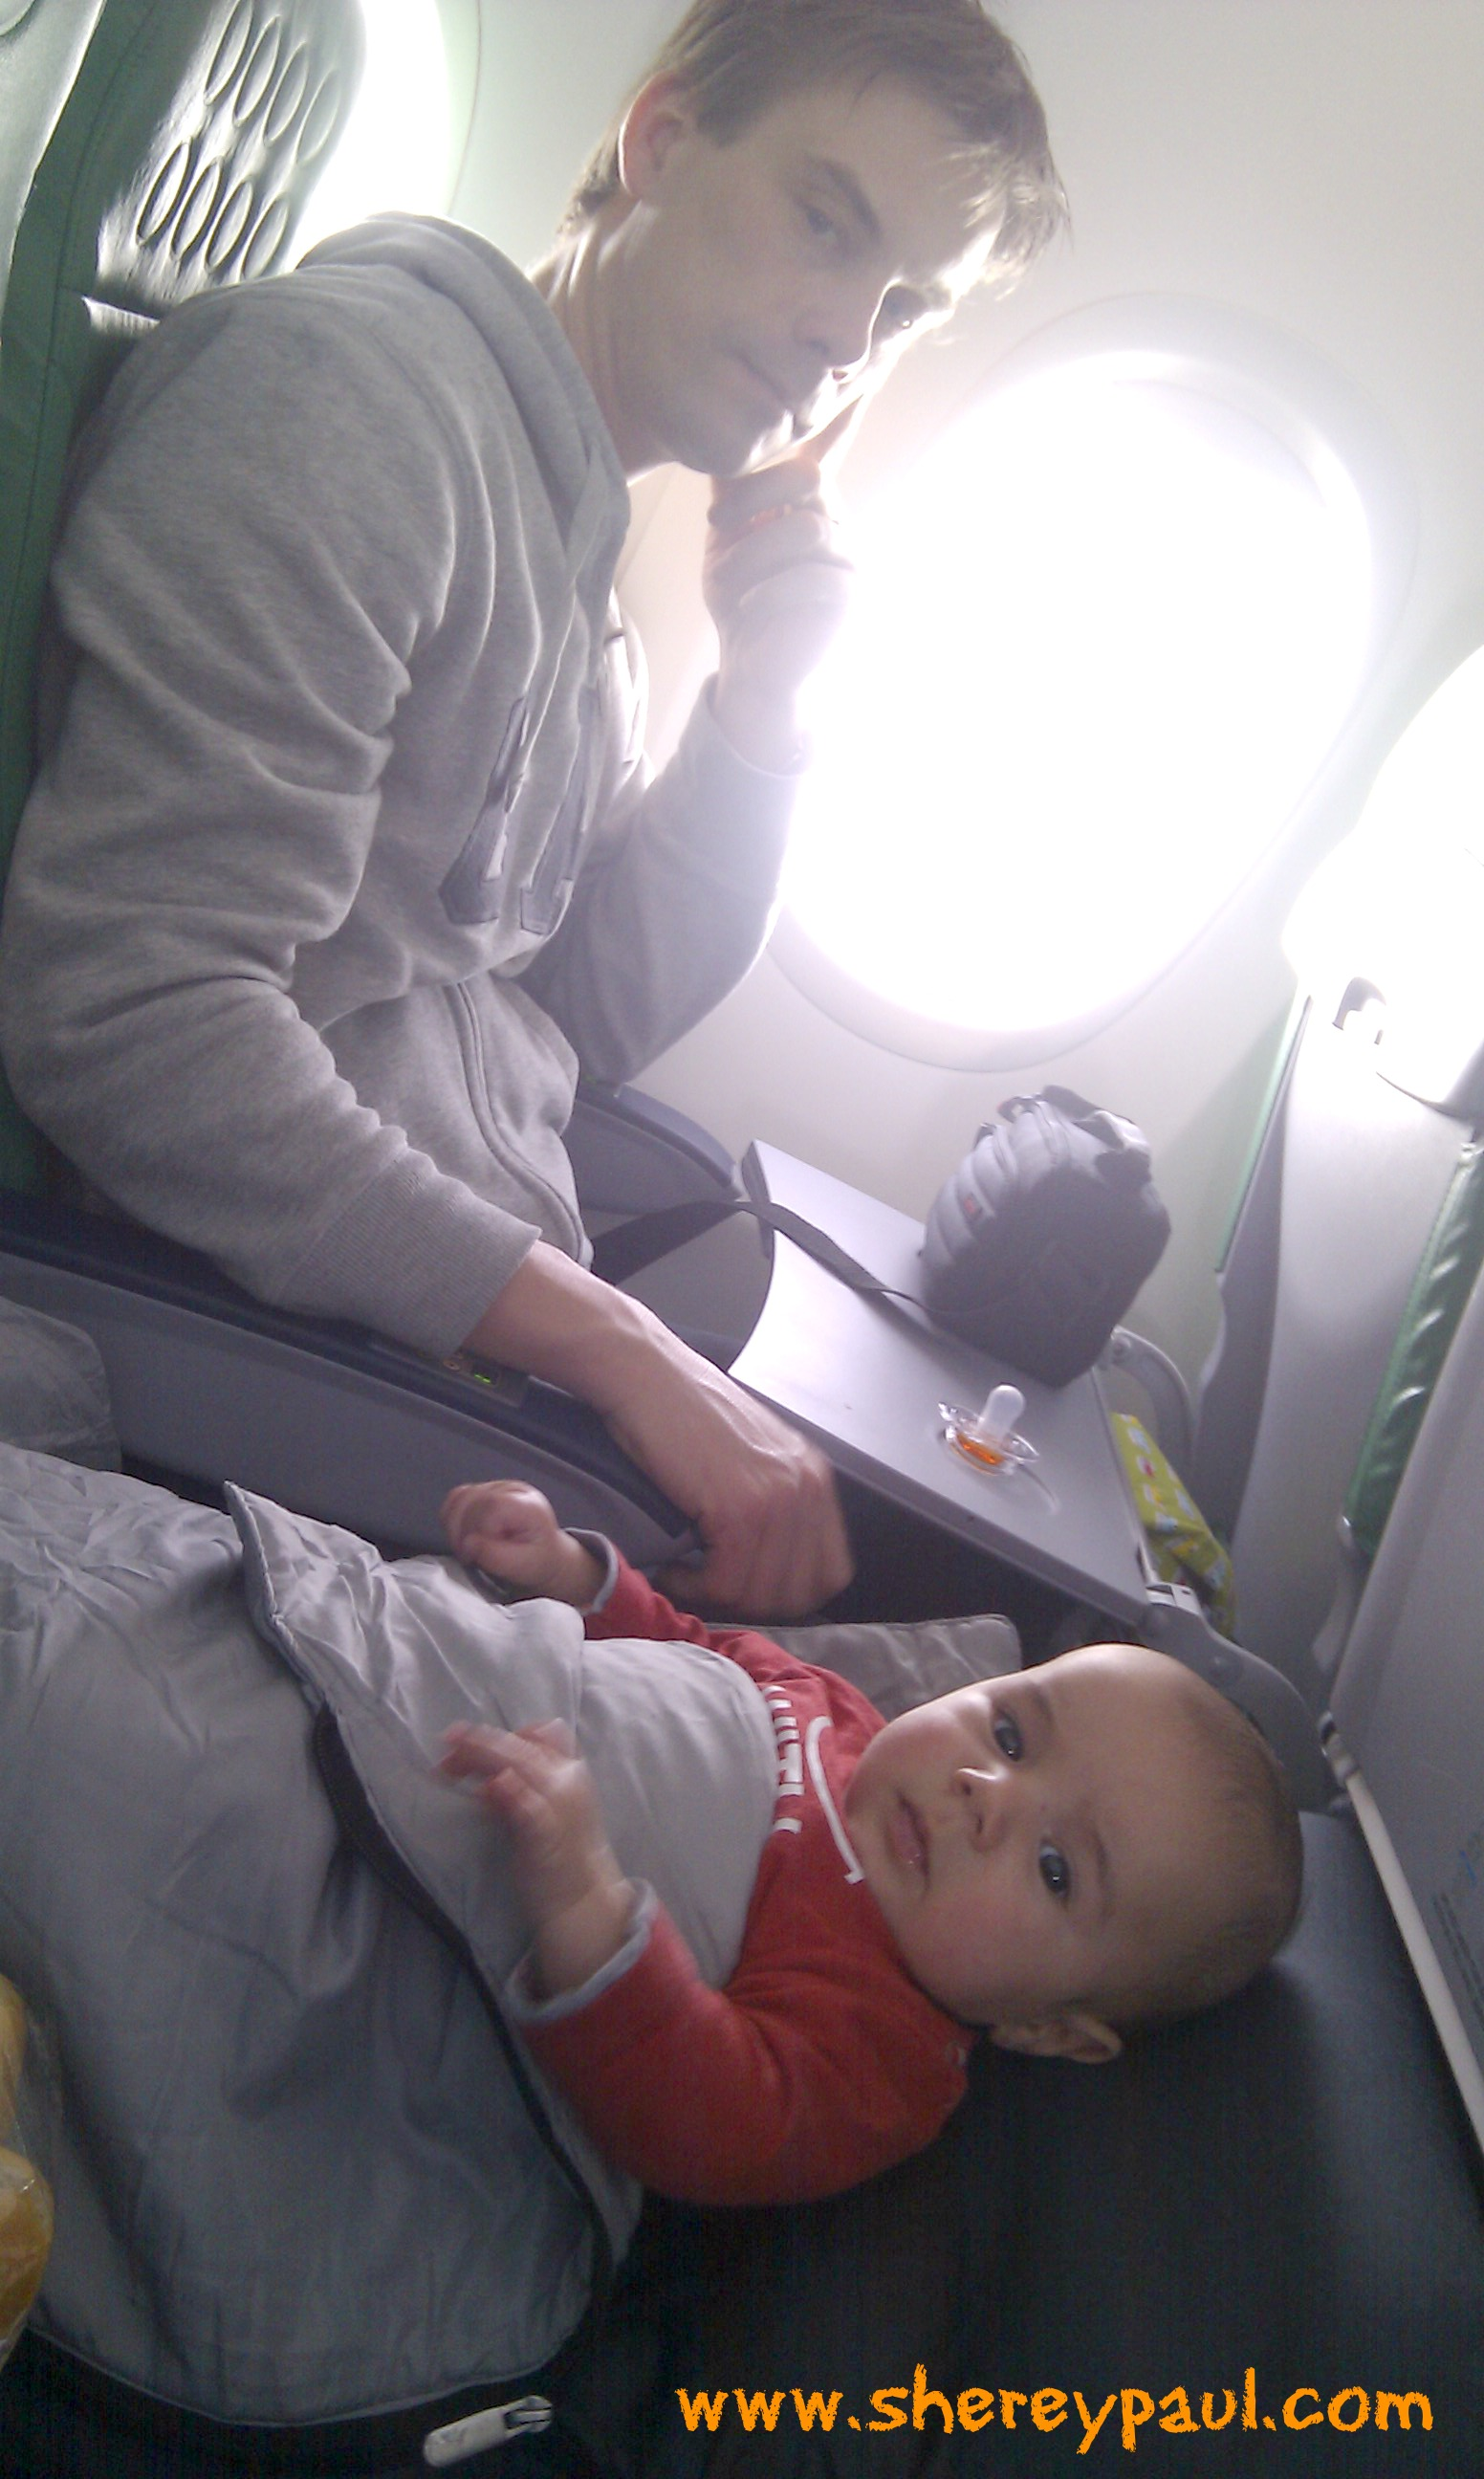 Baby bed for airplane - Our Air Bed In The Flight Amsterdam Tenerife